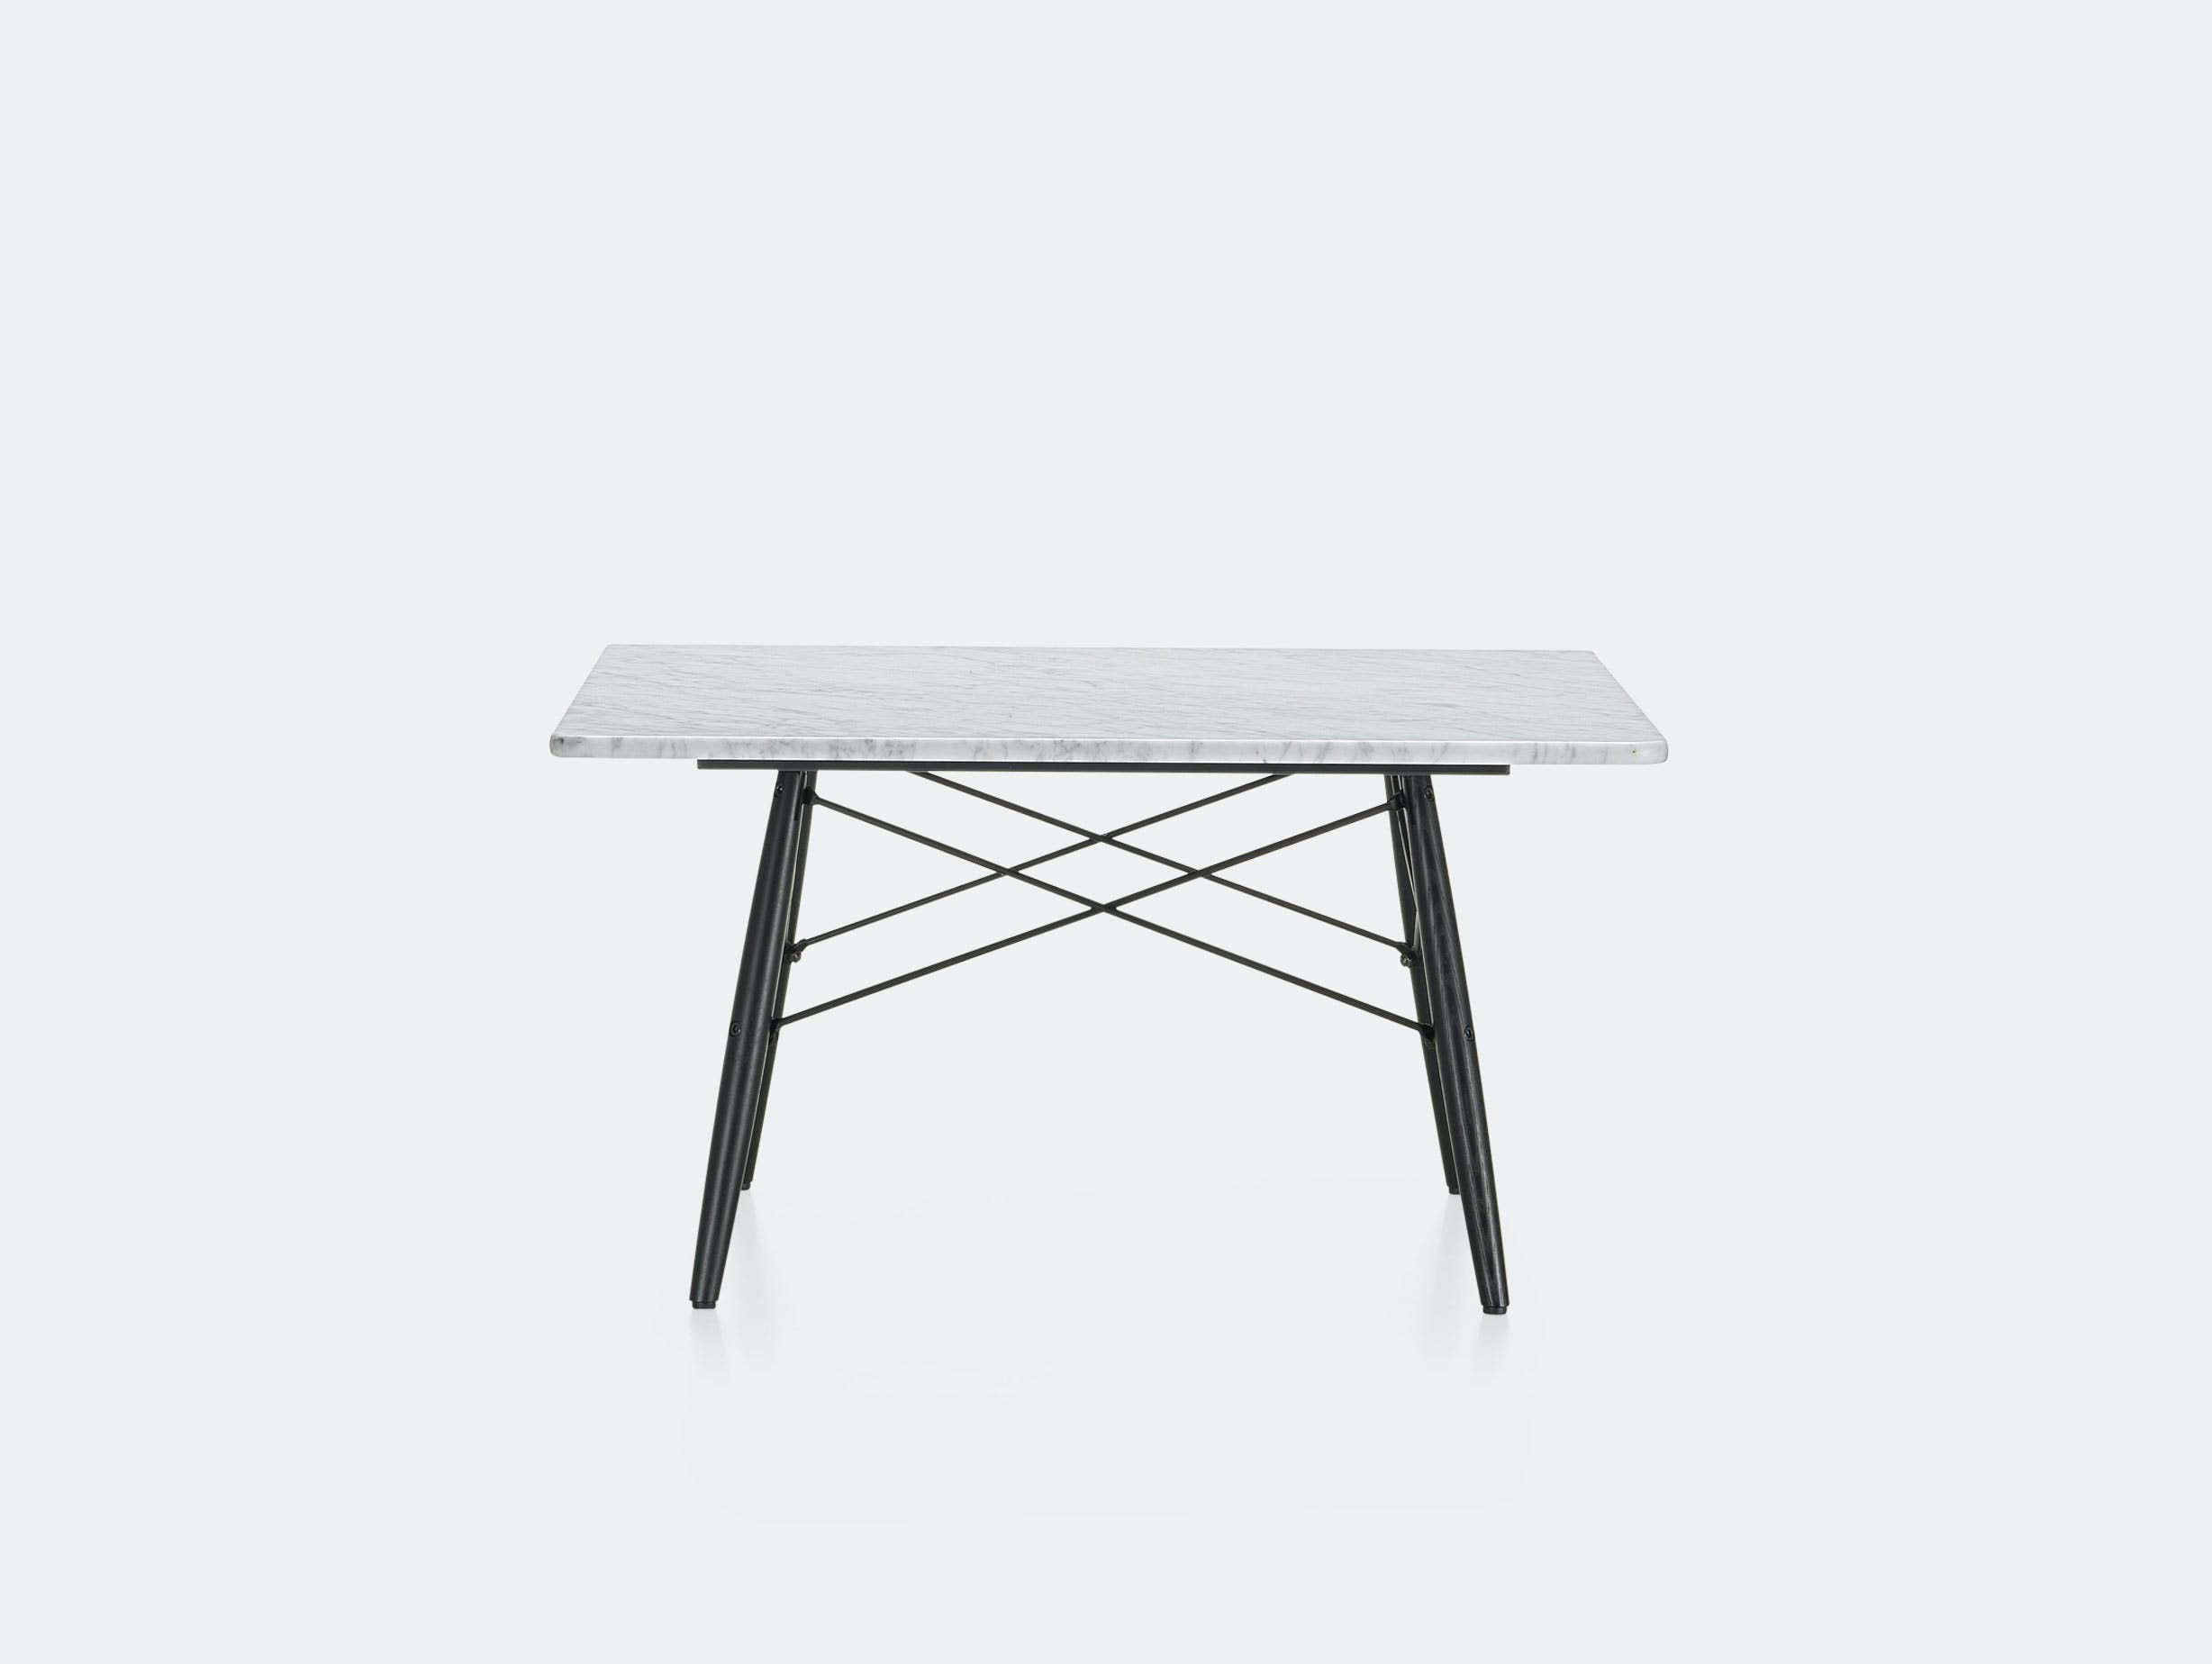 Vitra Eames Coffee Table Marble Charles And Ray Eames